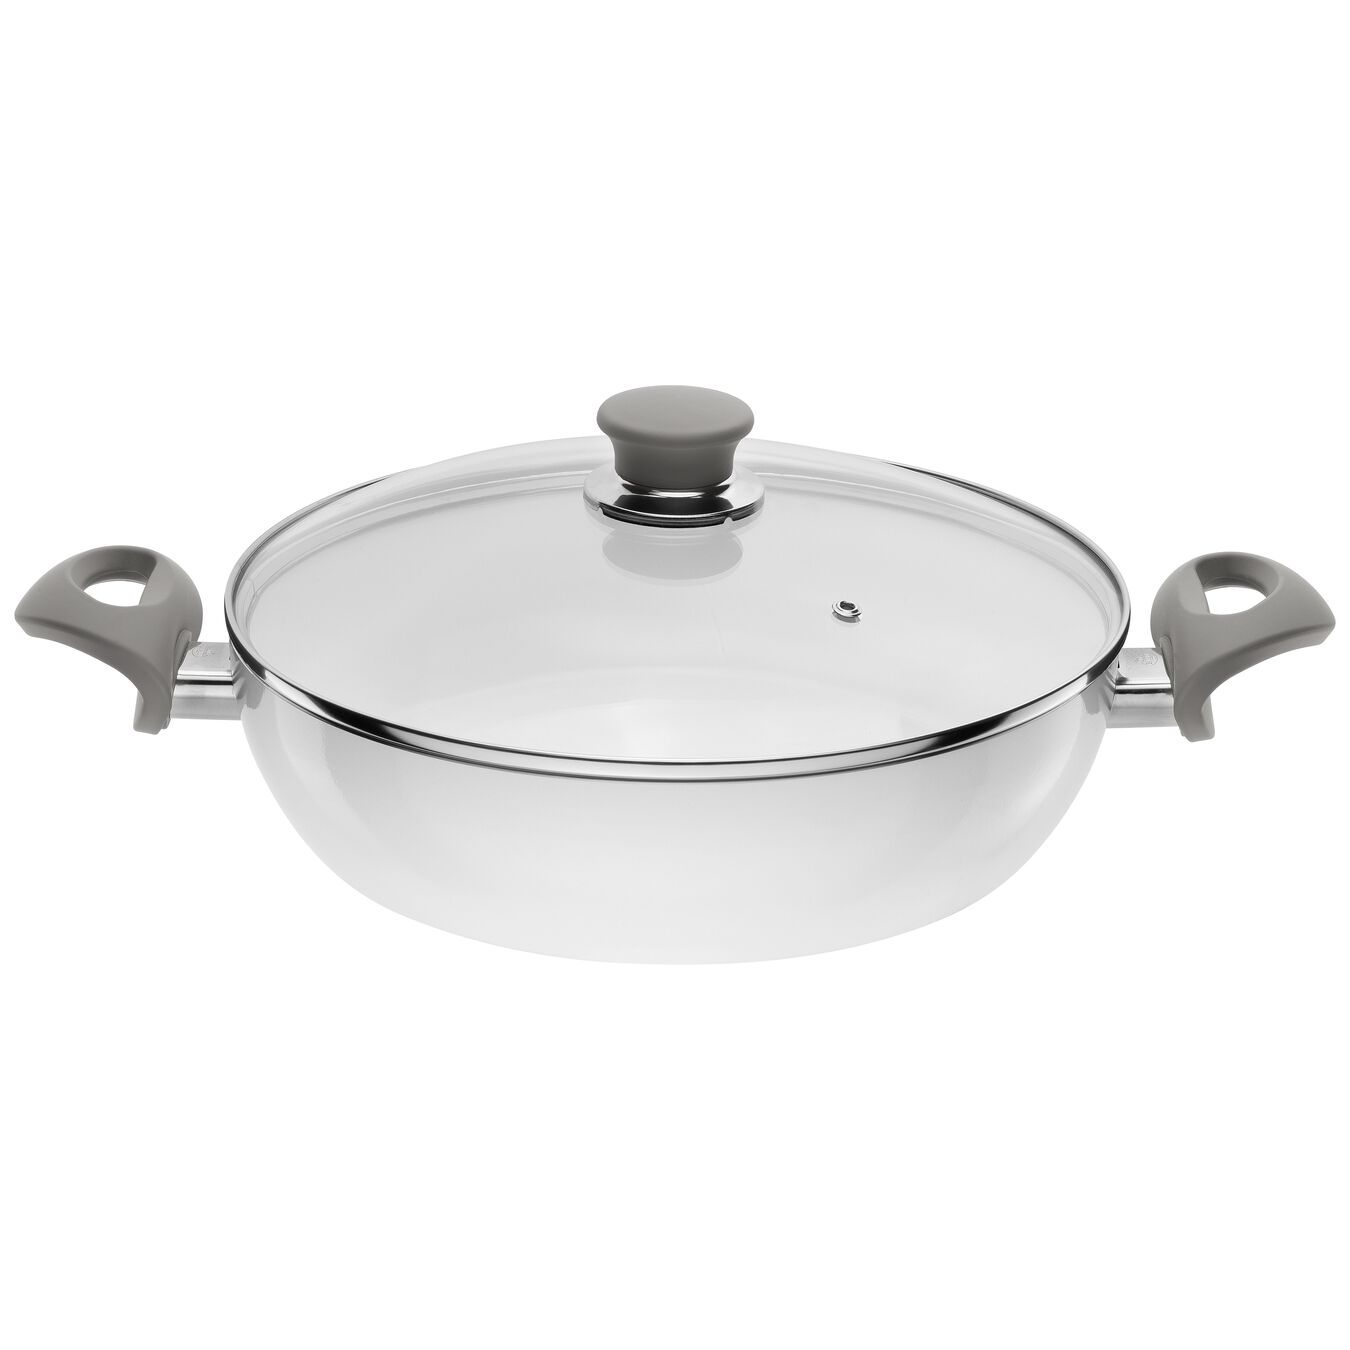 28 cm / 11 inch Special Formula Steel Frying pan,,large 1